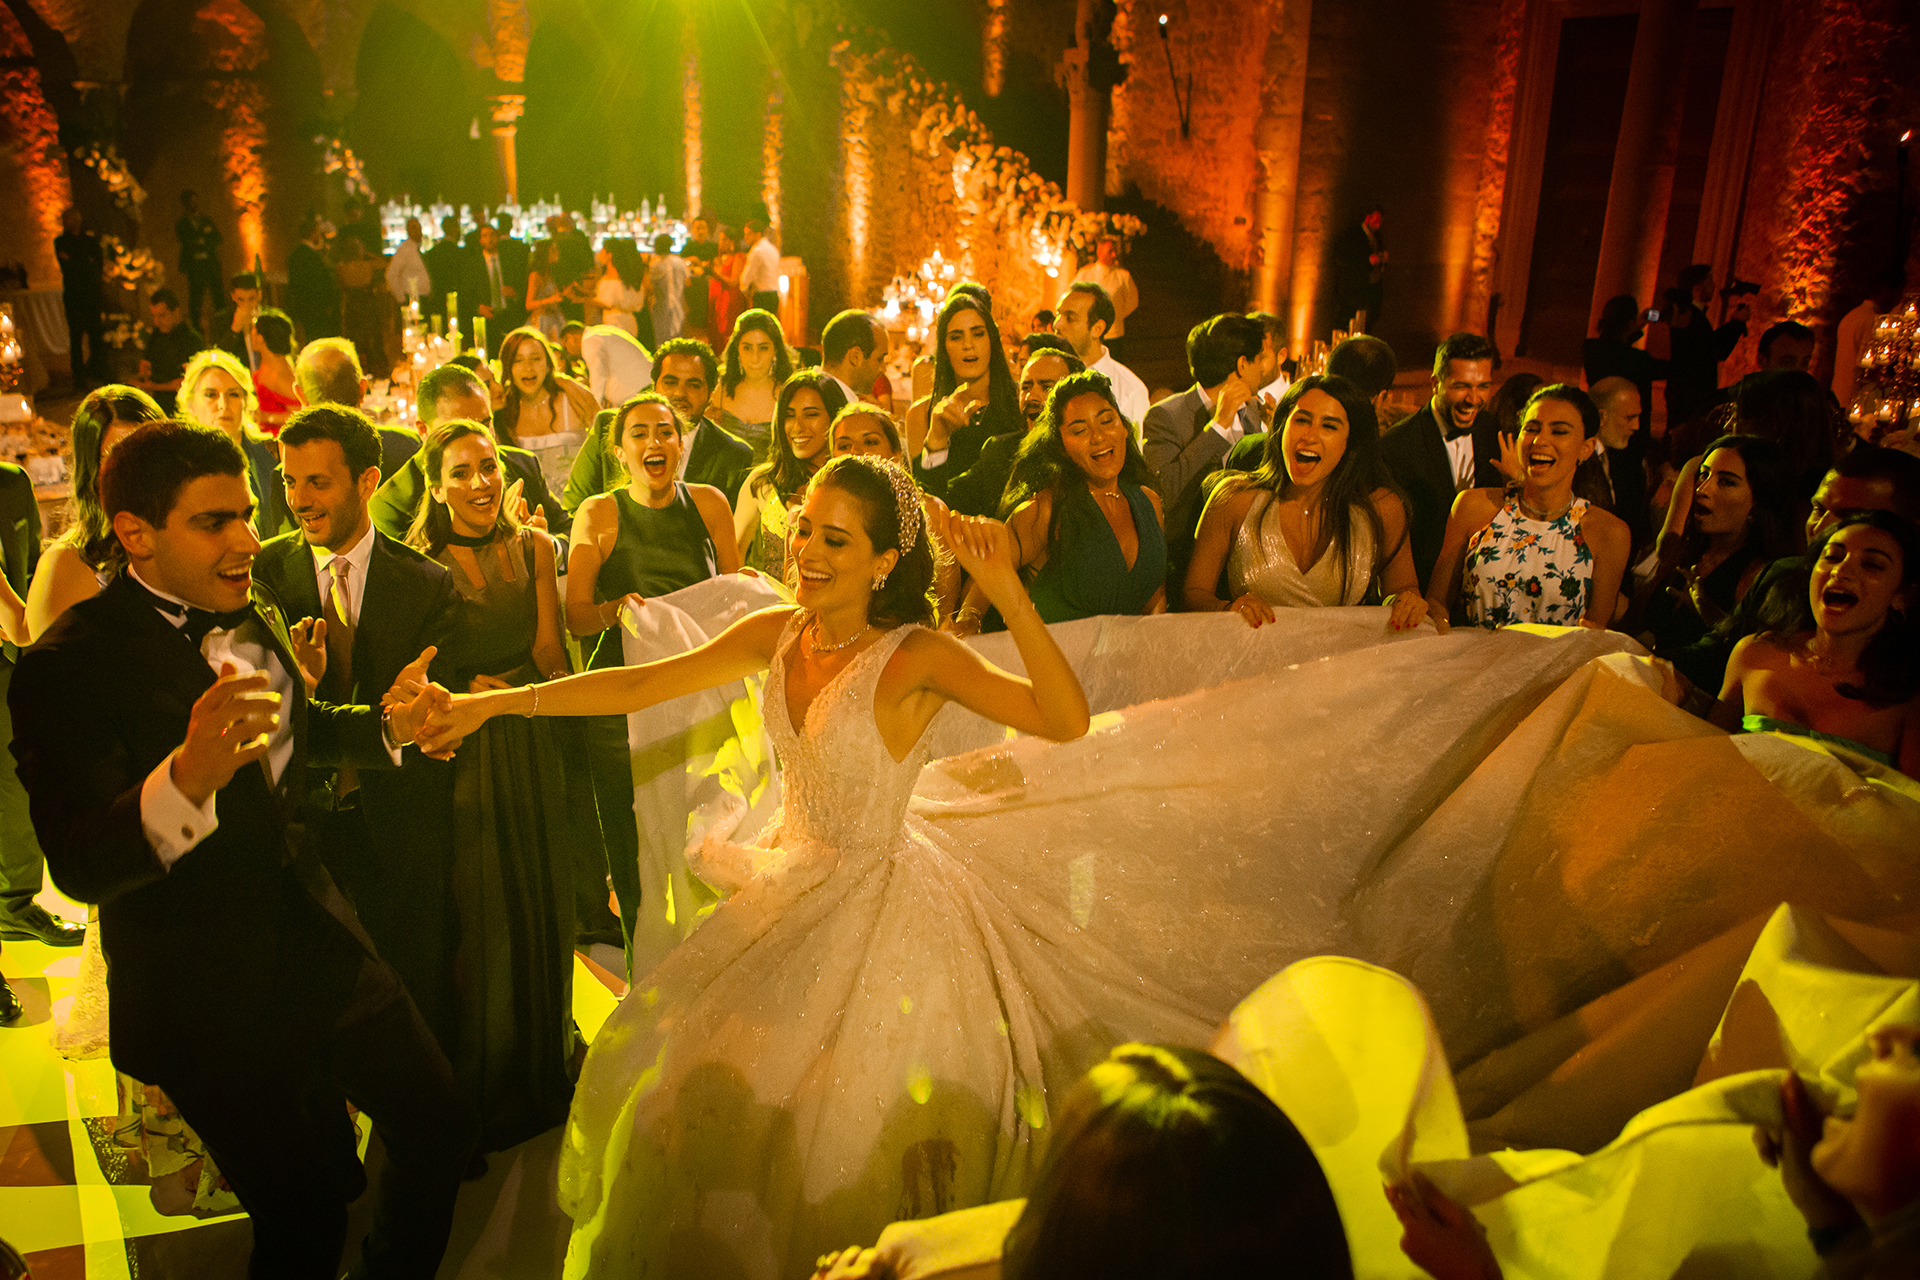 Photography of The party at the reception venue with the royal bride and groom